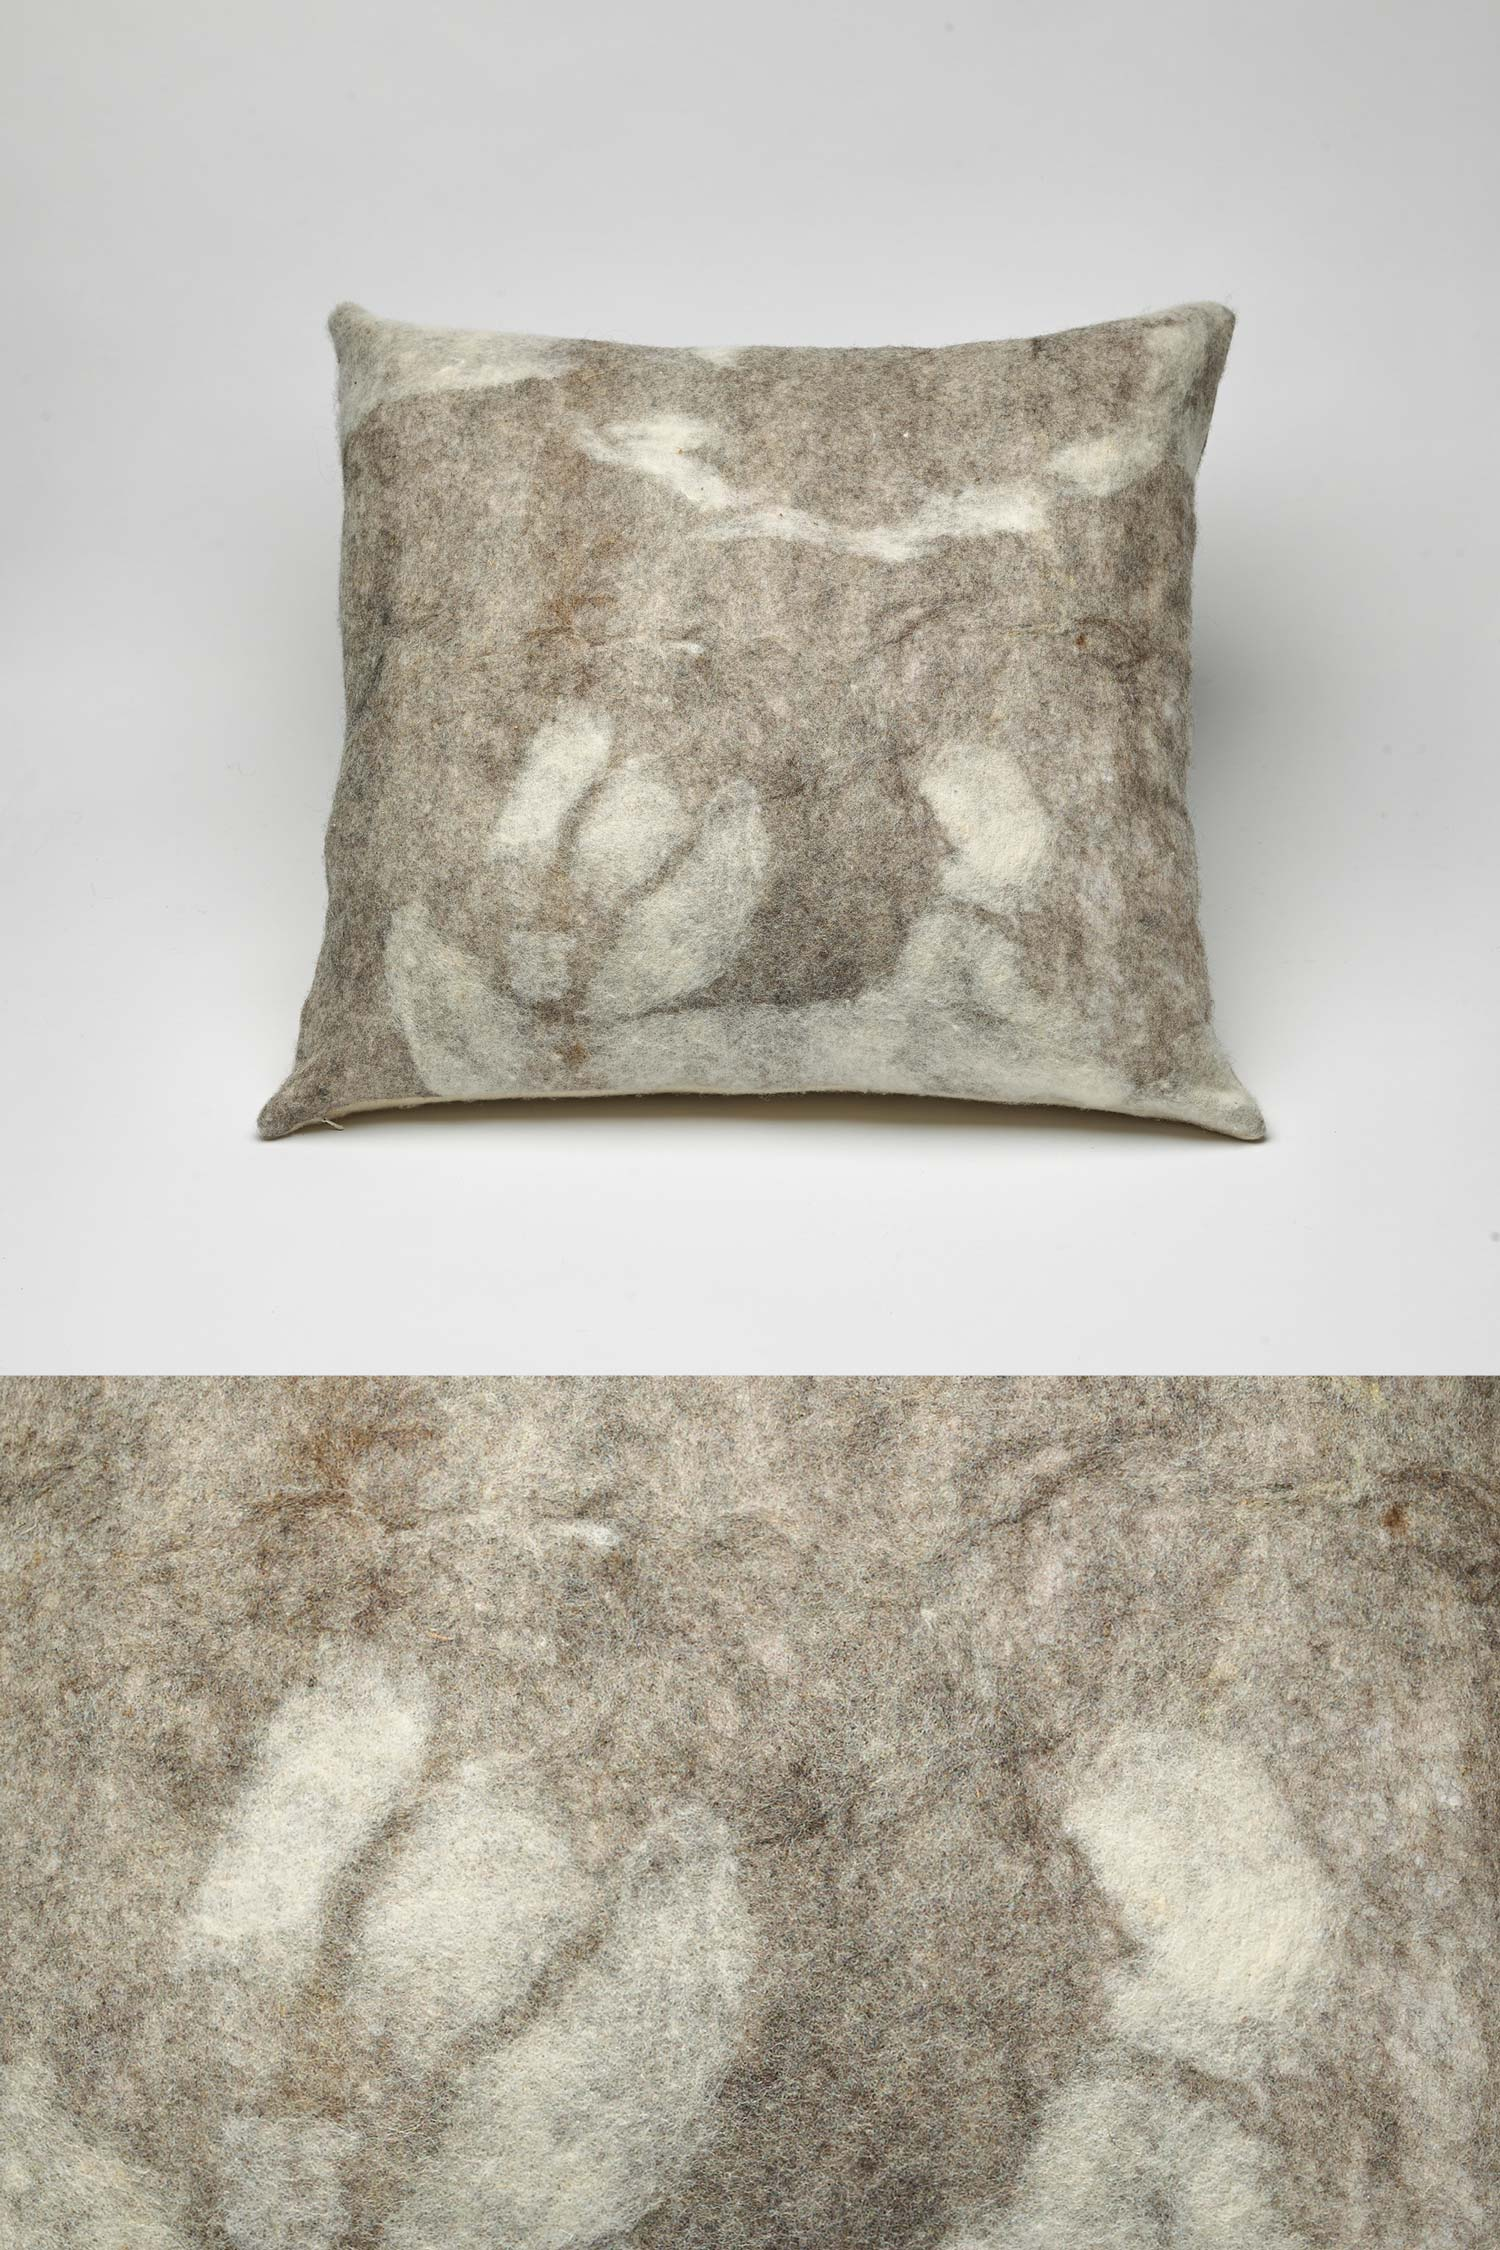 Shetland Wool Cloud Pillow | Square | Ivory Gray